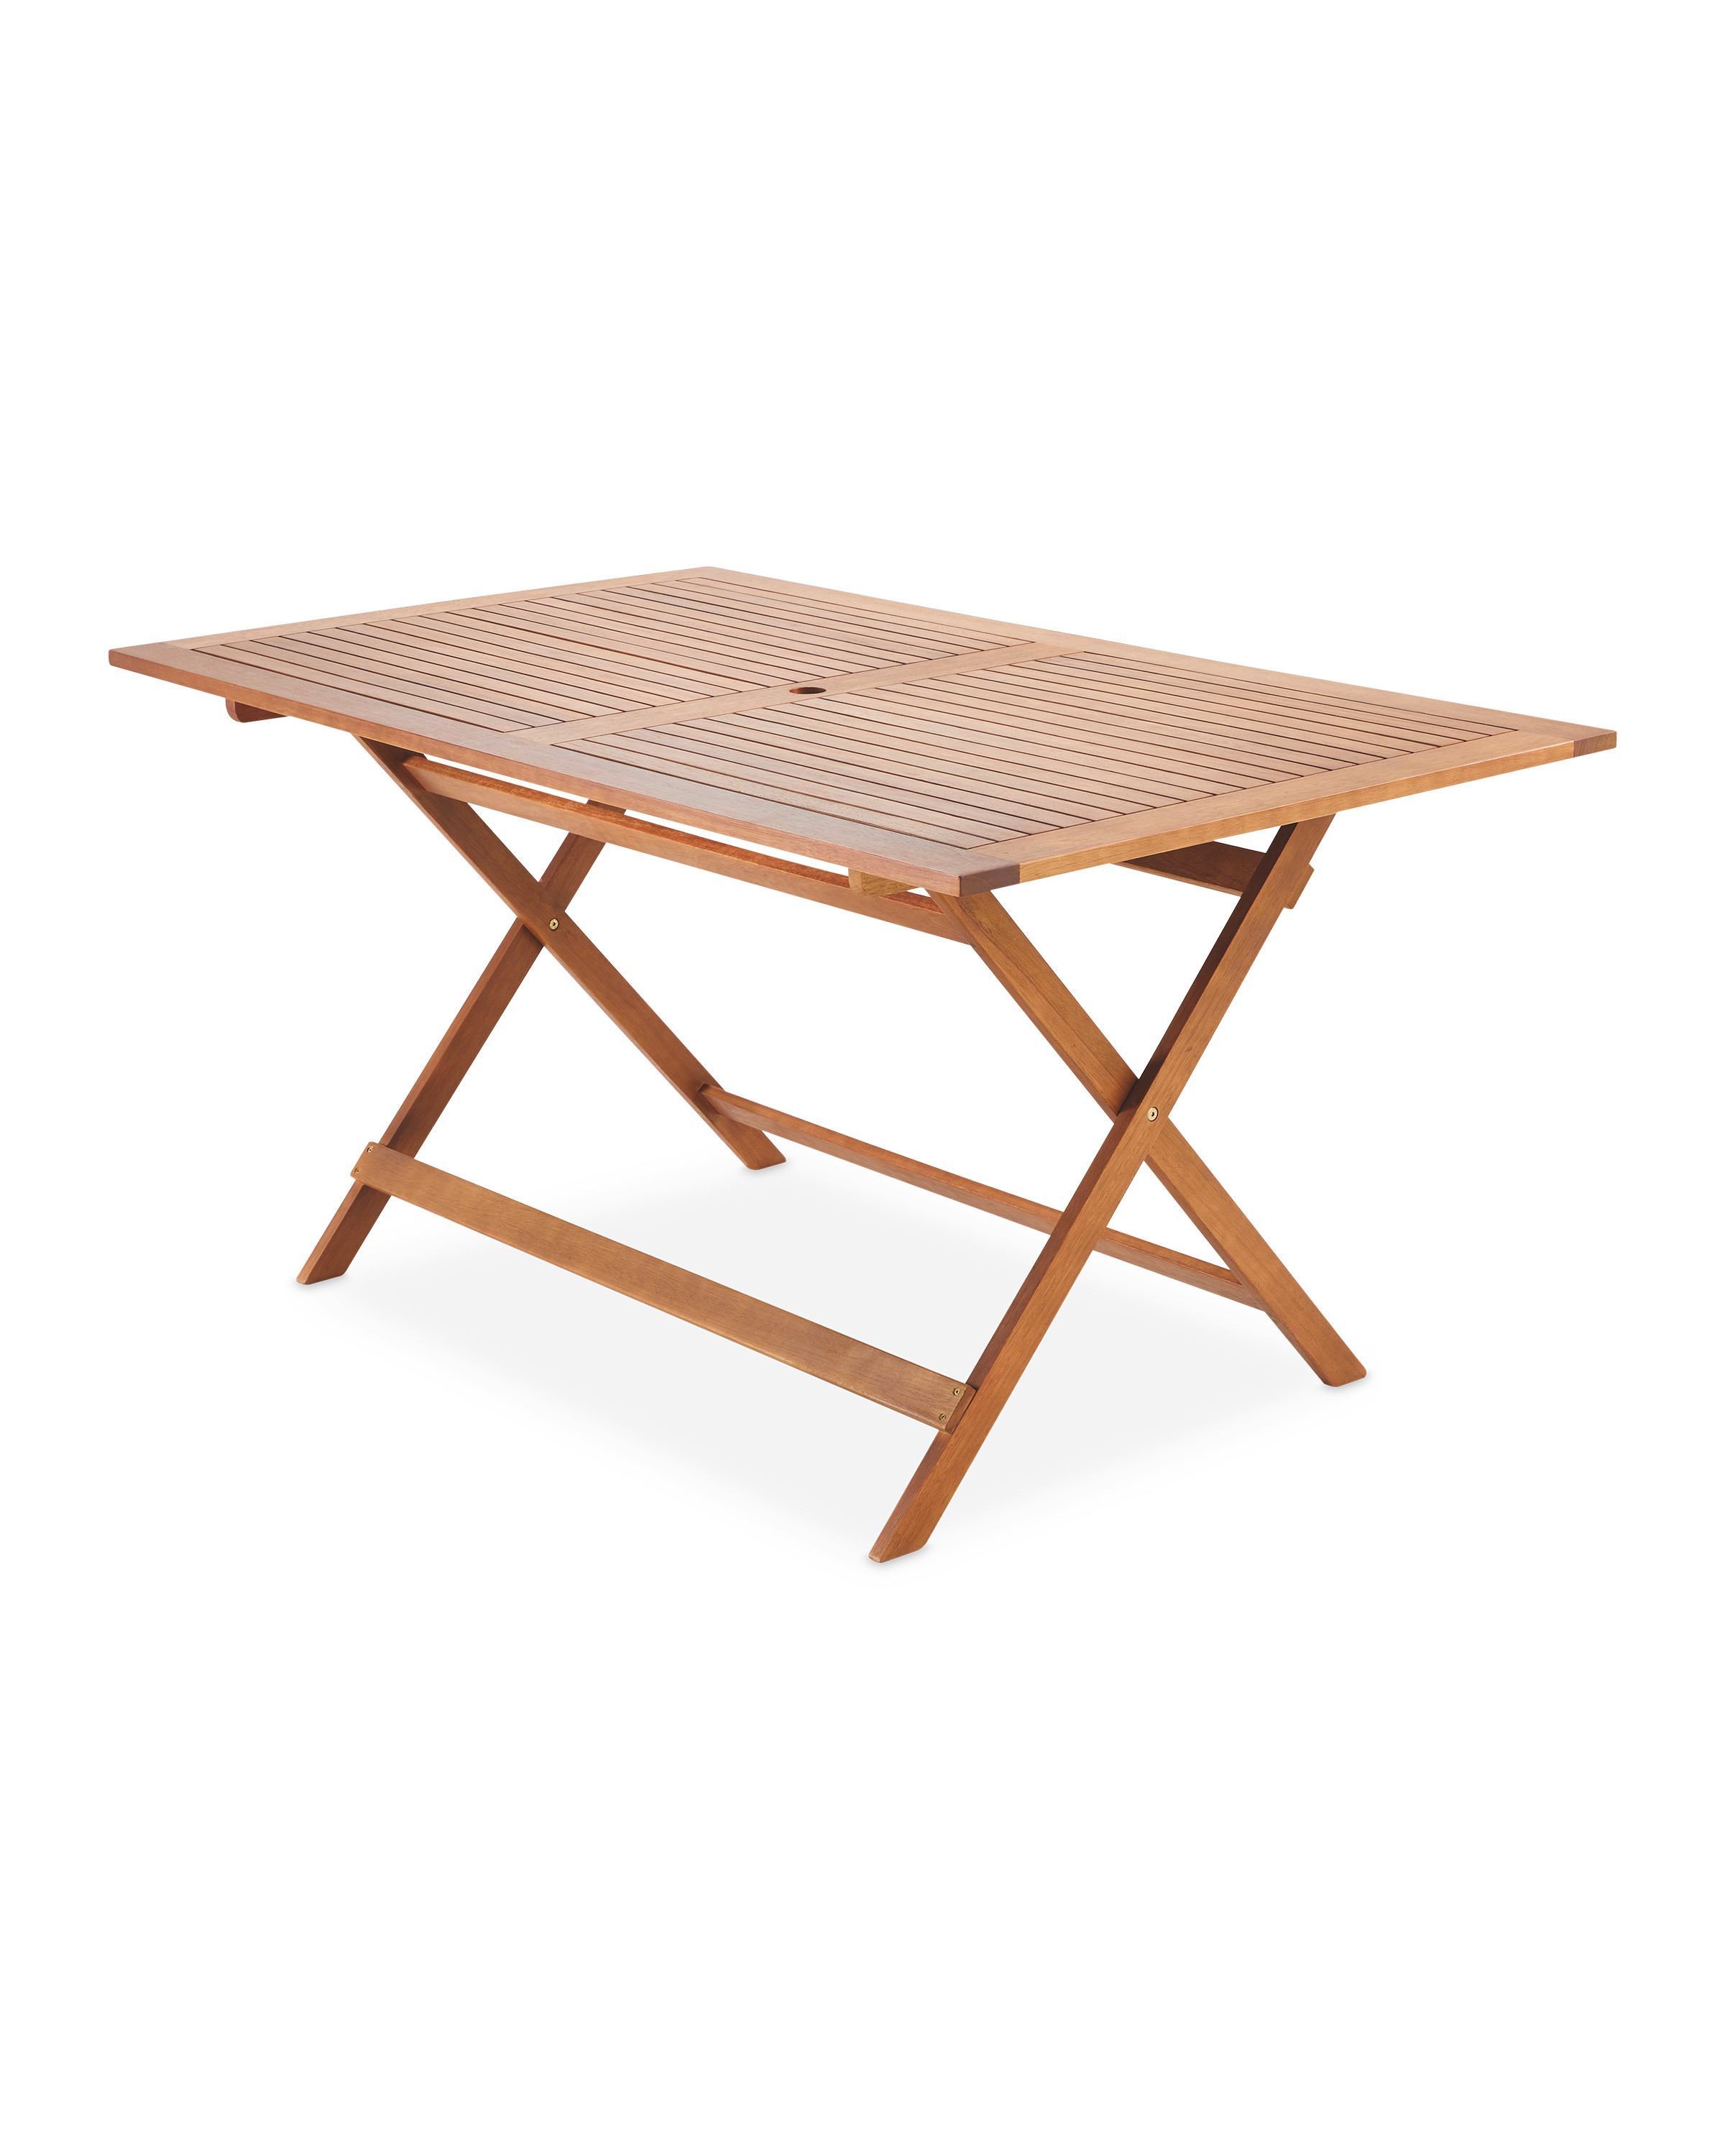 Incredible Gardenline Wooden Garden Table Gmtry Best Dining Table And Chair Ideas Images Gmtryco